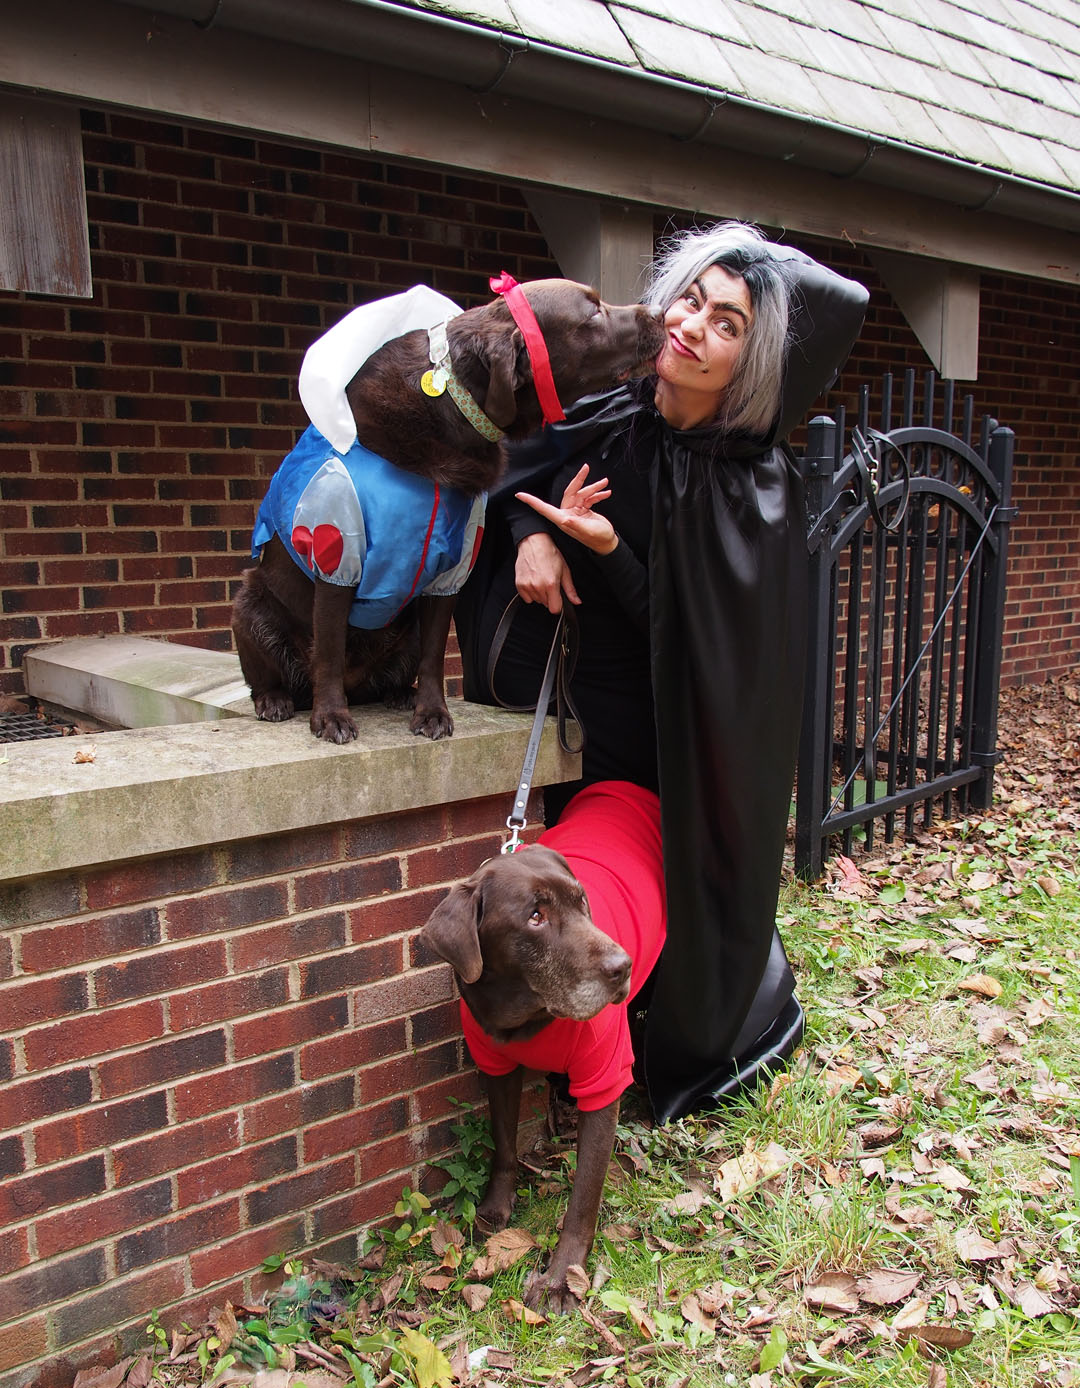 Dog Halloween Costume Idea: Snow White and Poison Apple